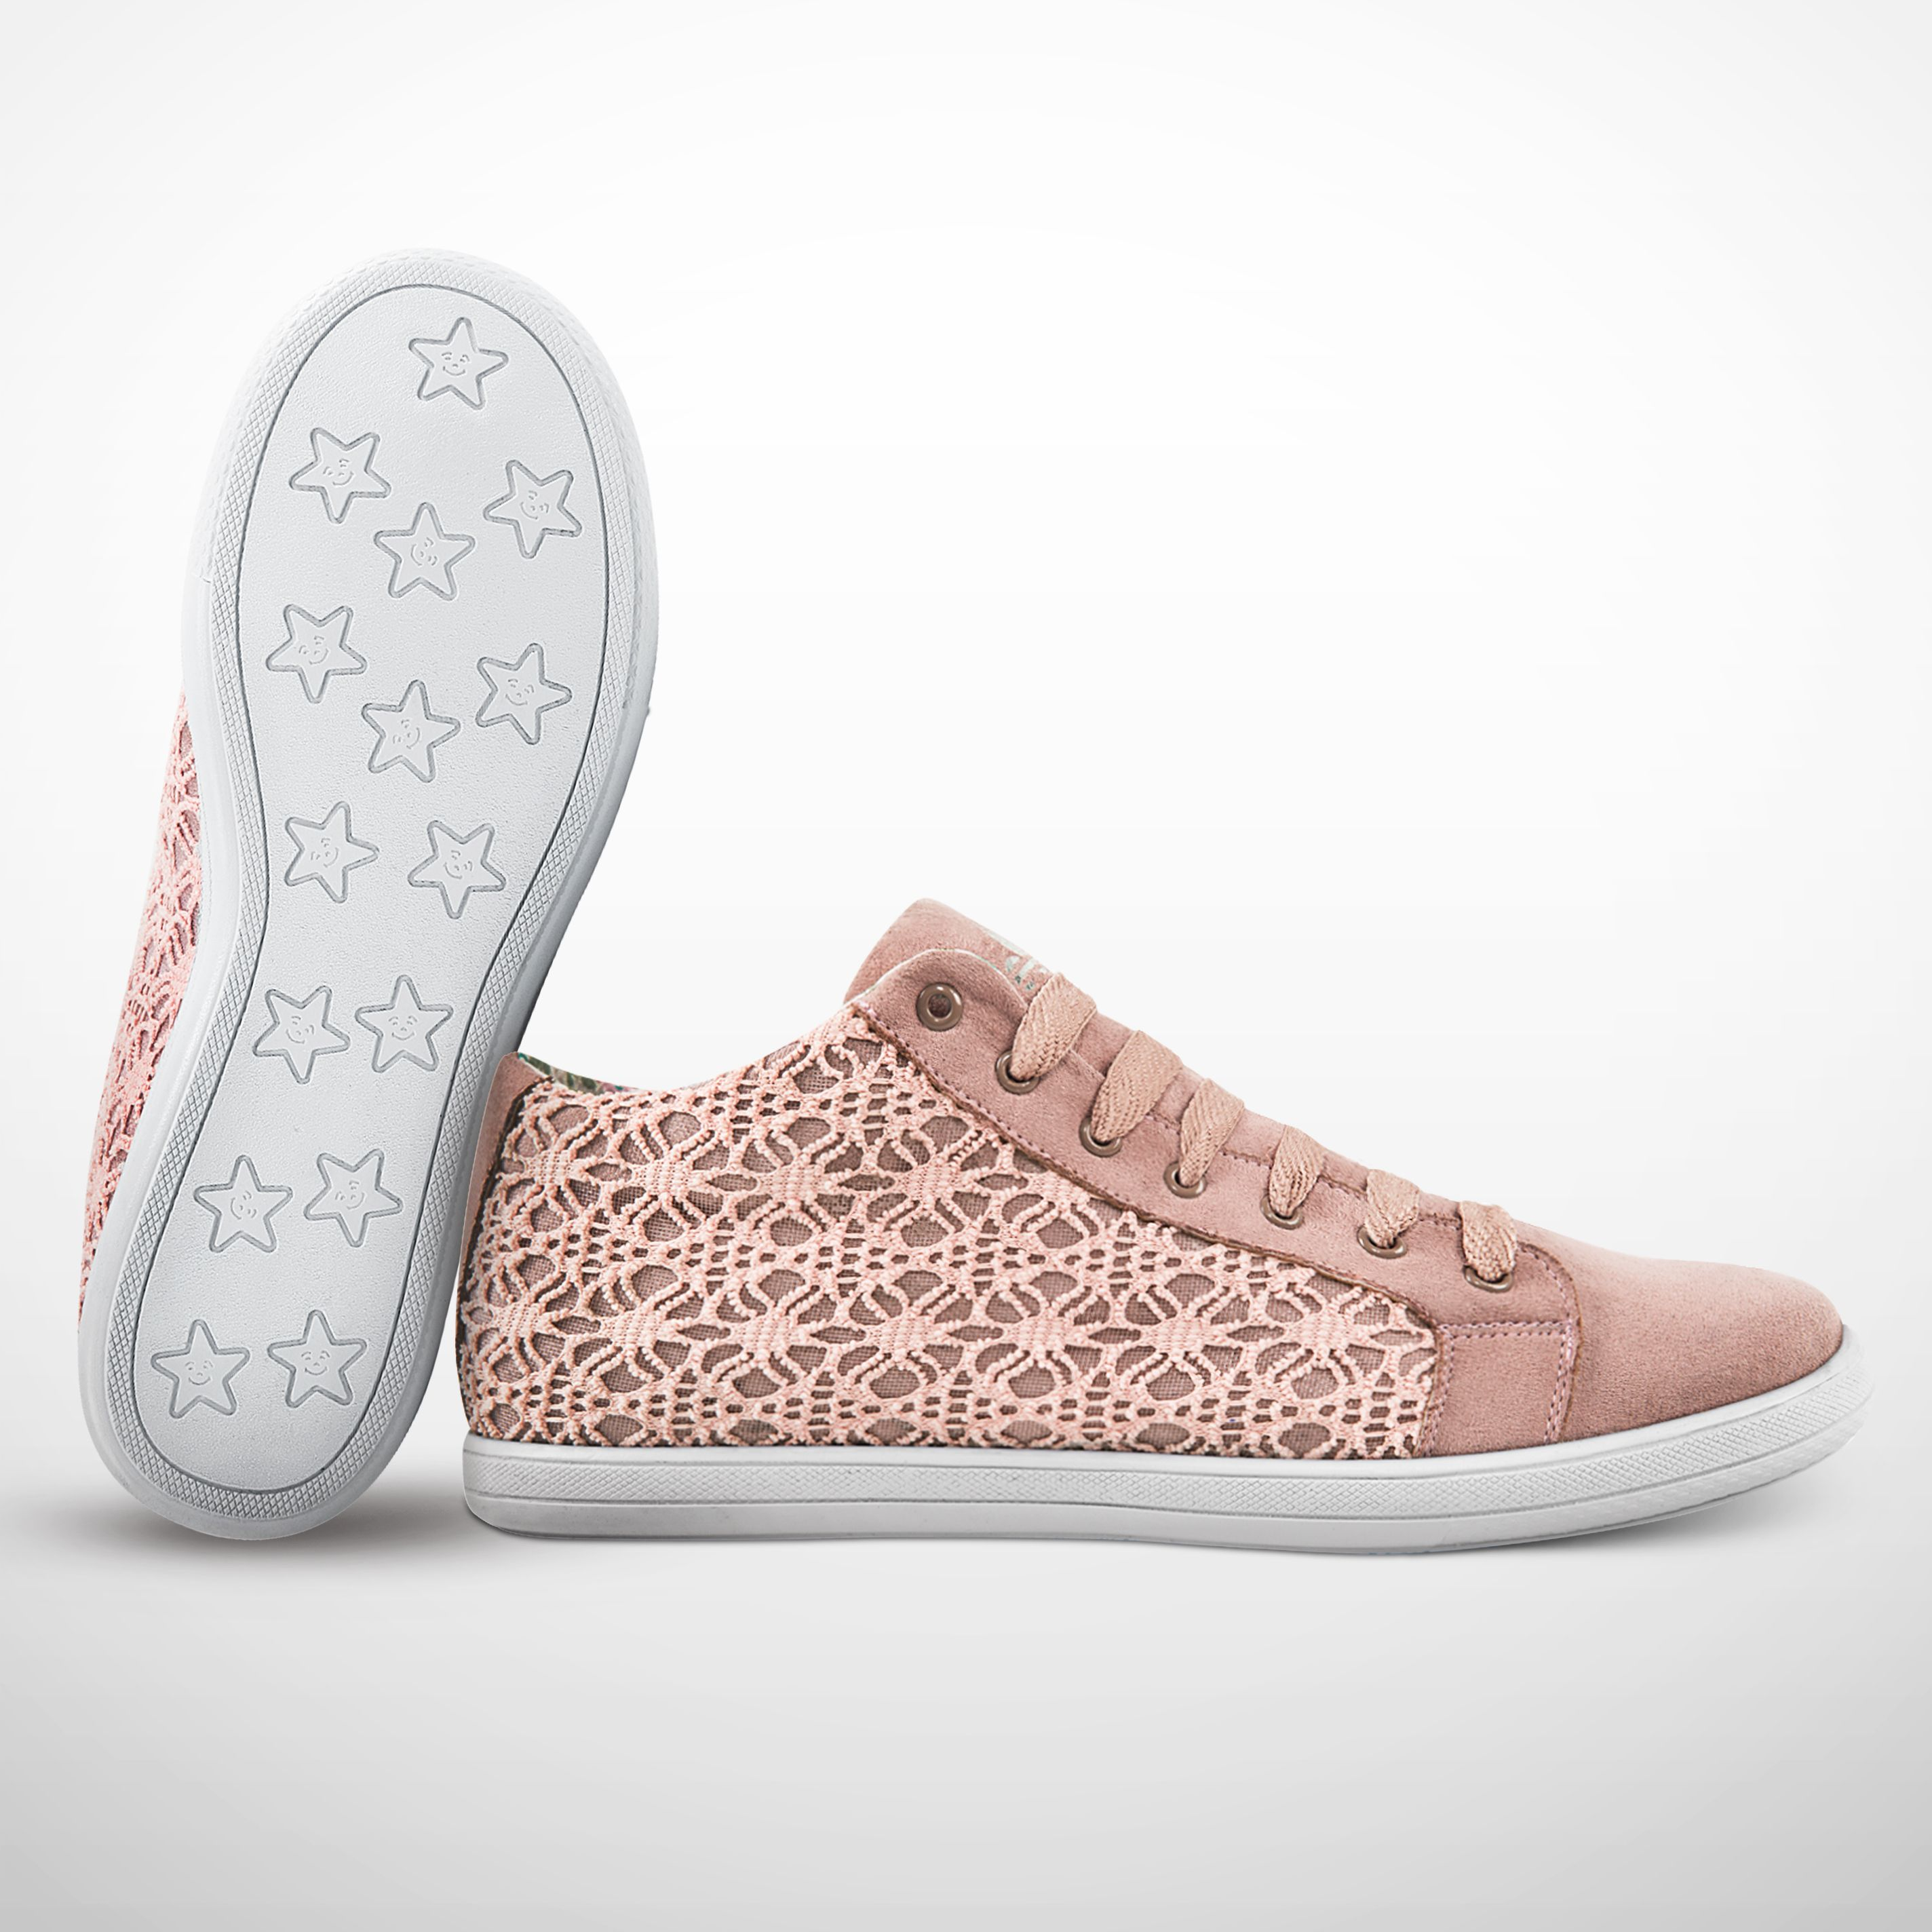 Chaussures Blanches Comfortabel Femmes RjjO4